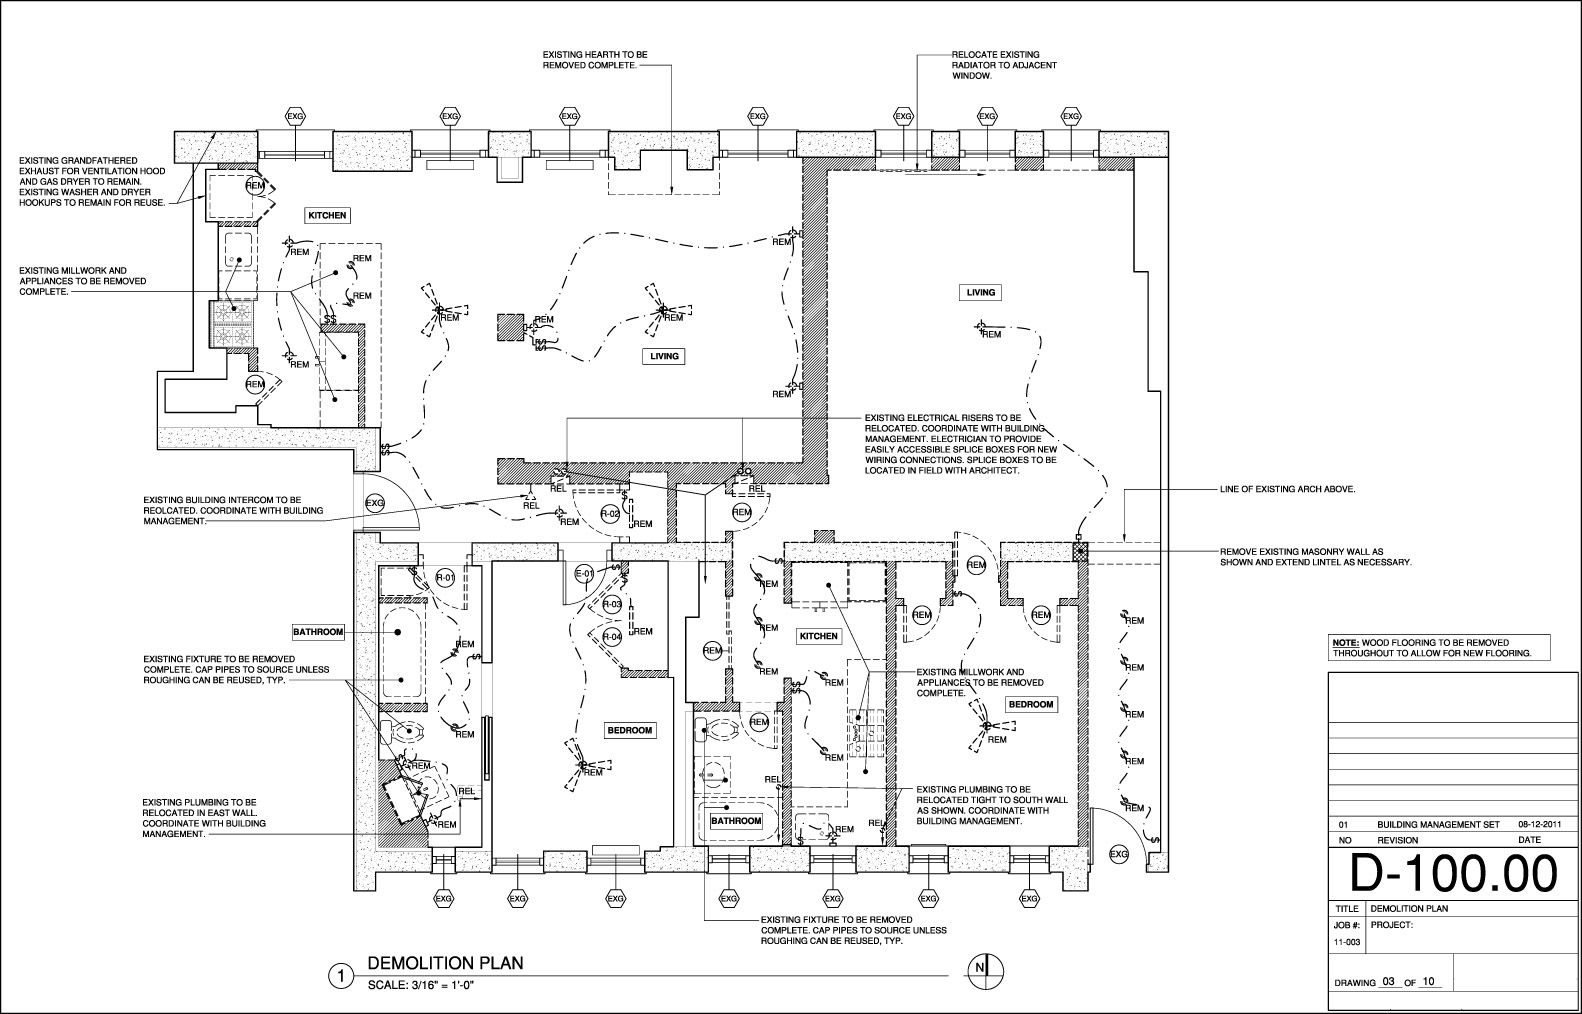 Demolition plan construction documents construction - General notes for interior design drawings ...